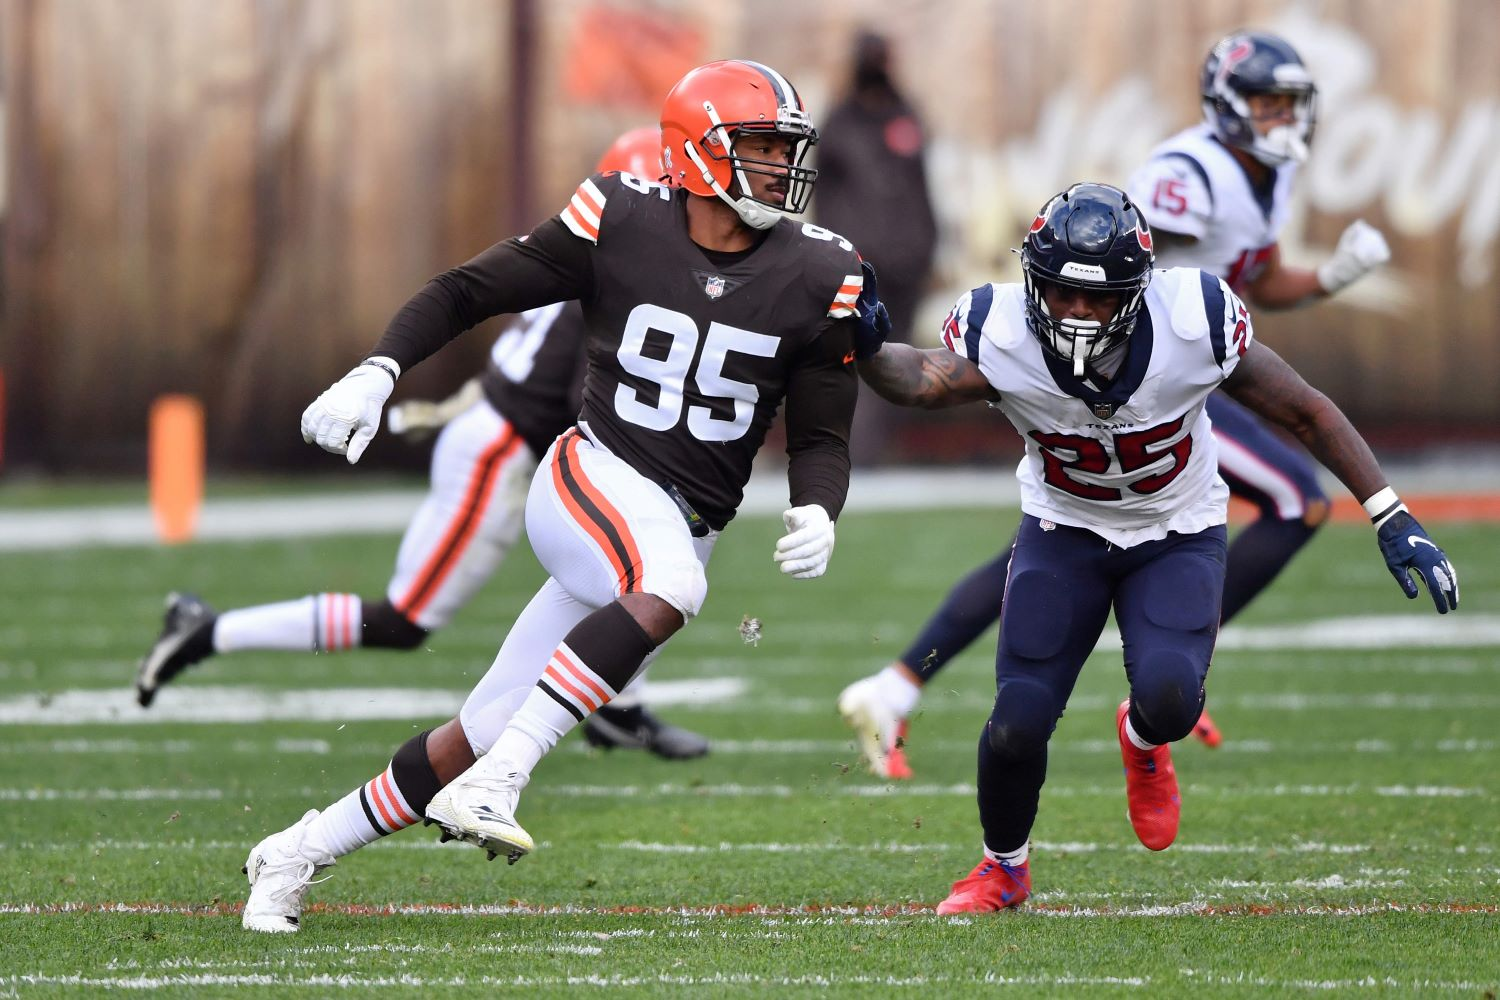 The Cleveland Browns just suffered a massive blow to their defense with star pass rusher Myles Garrett landing on the reserve/COVID-19 list.